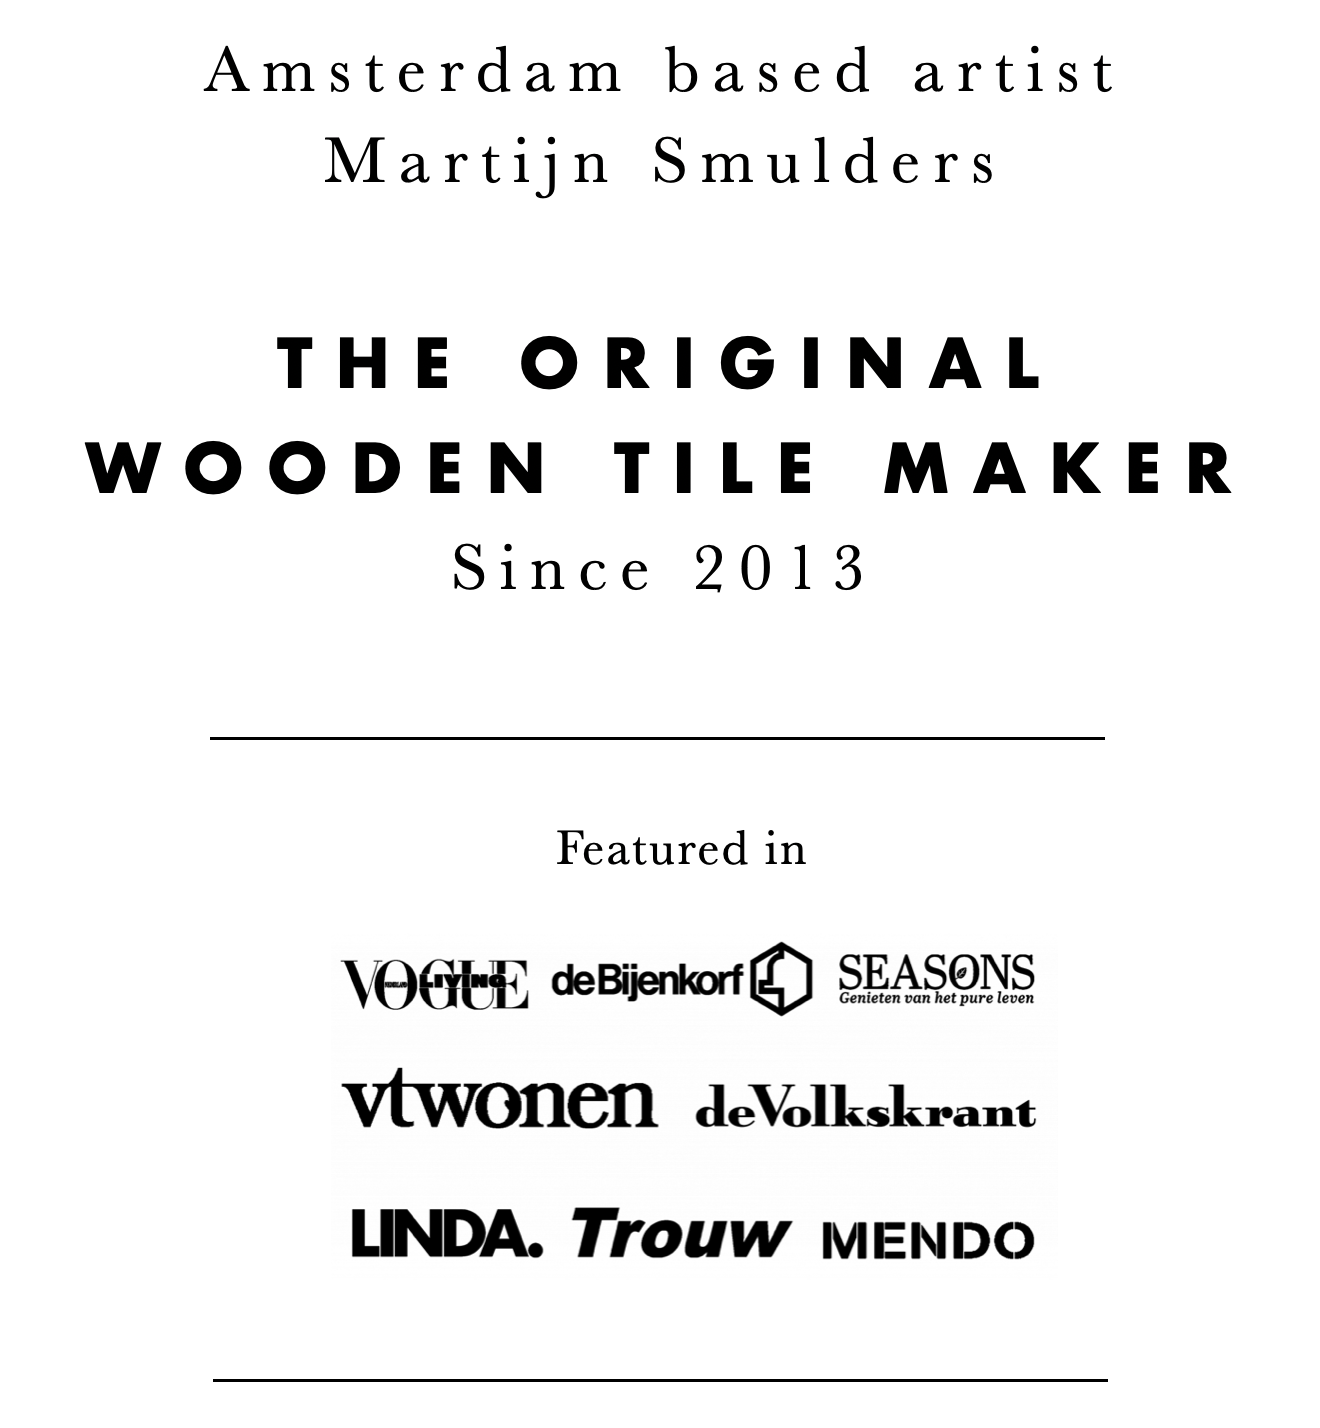 You are now at the home page of Stigerwoods. Martijn Smulders, from Amsterdam is the original wooden tile maker, since 2013. Stigerwoods has been featured in various magazines such as Vogue Living, VTwonen, Linda, Seasons, Mendo and many more.